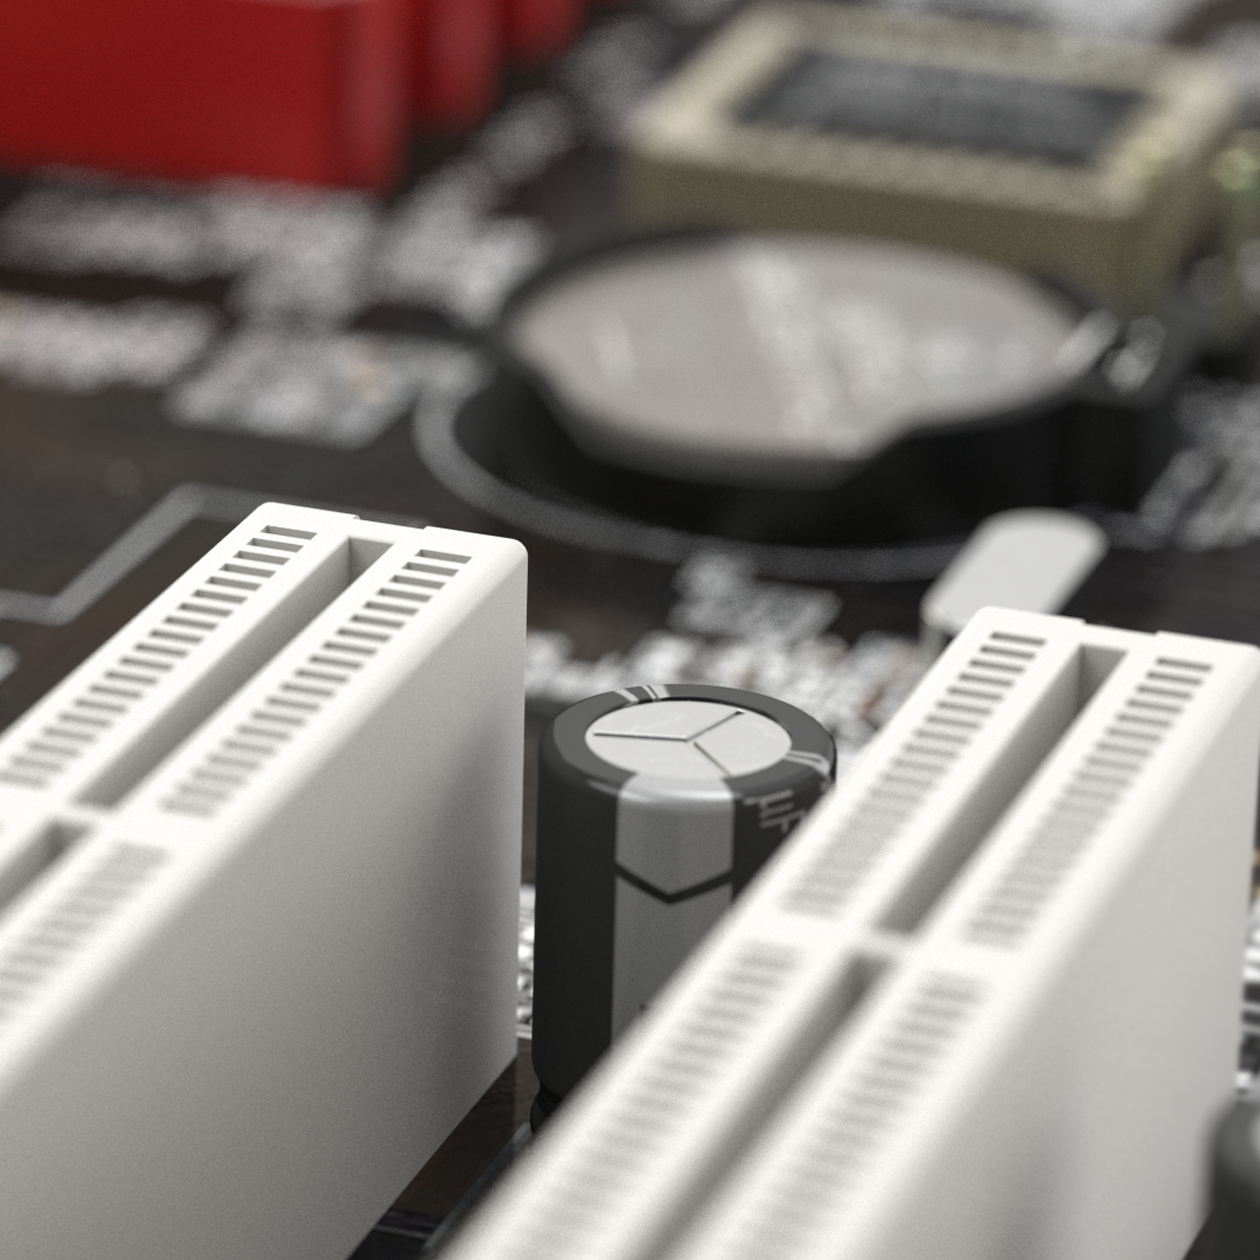 Close up render of a computer motherboard focusing on a capacitor